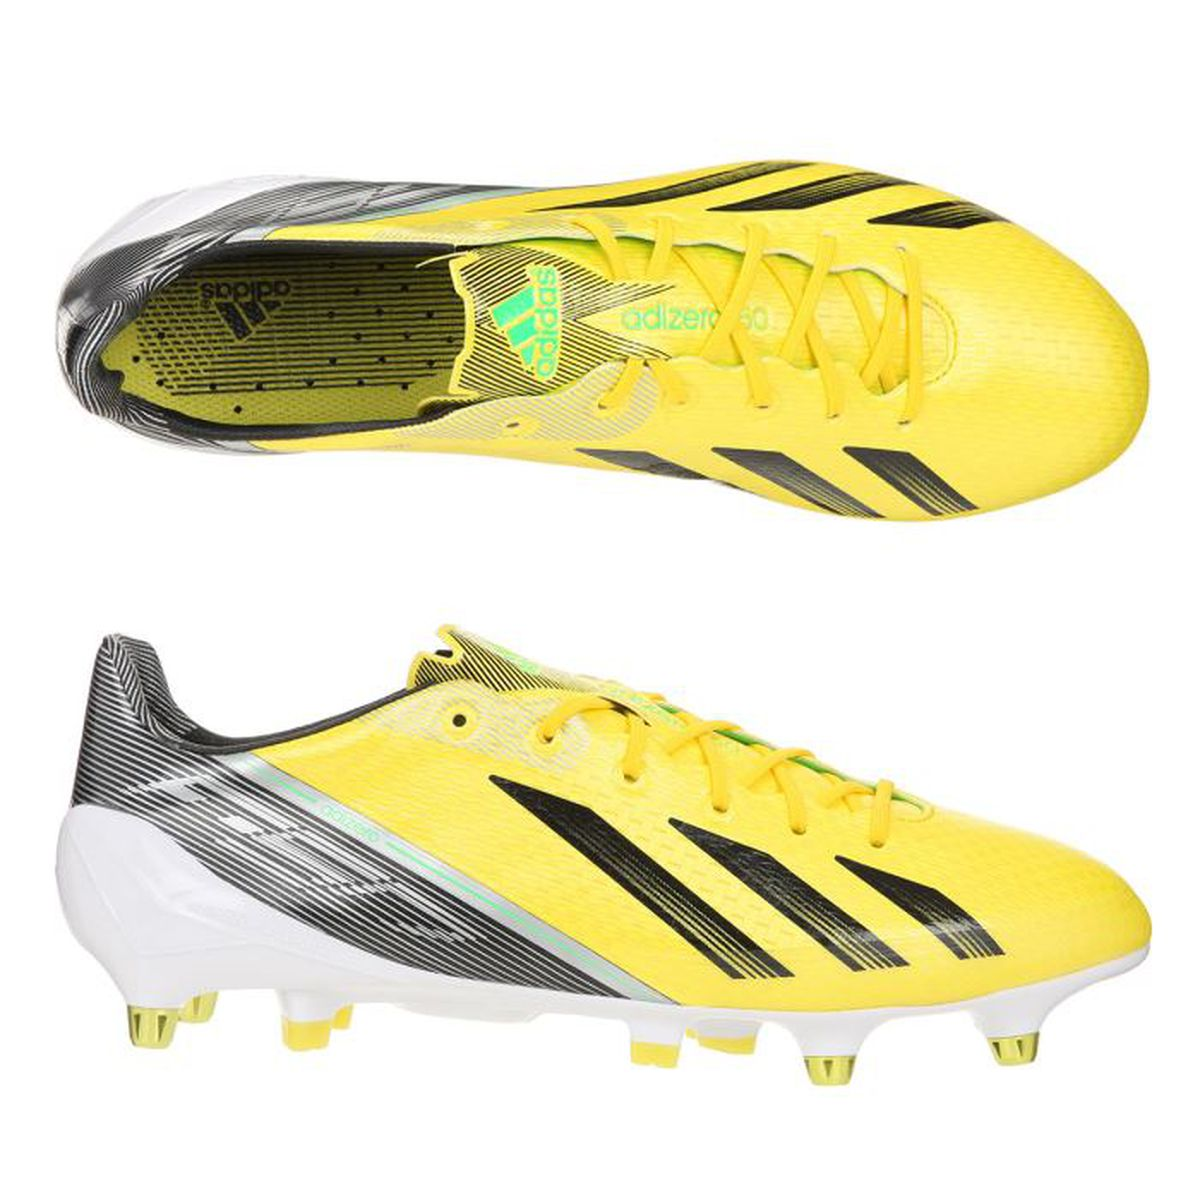 adidas chaussures foot f50 adizero sg prix pas cher soldes cdiscount. Black Bedroom Furniture Sets. Home Design Ideas